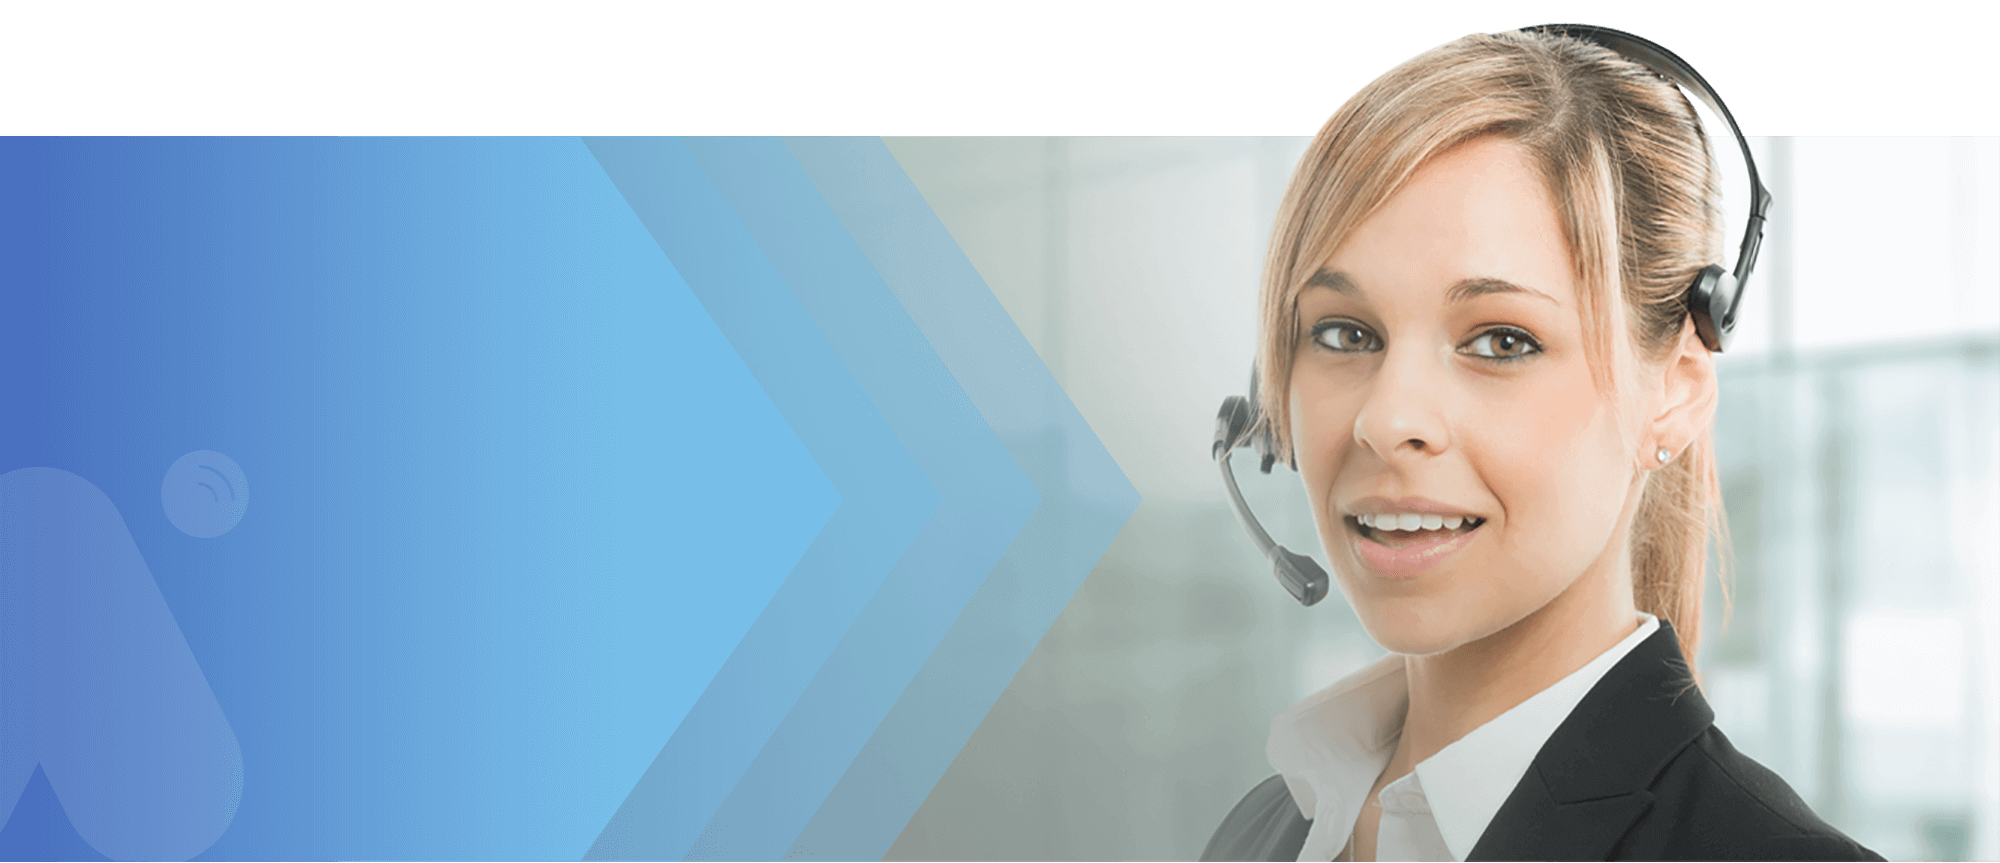 Telemarketing Companies UK